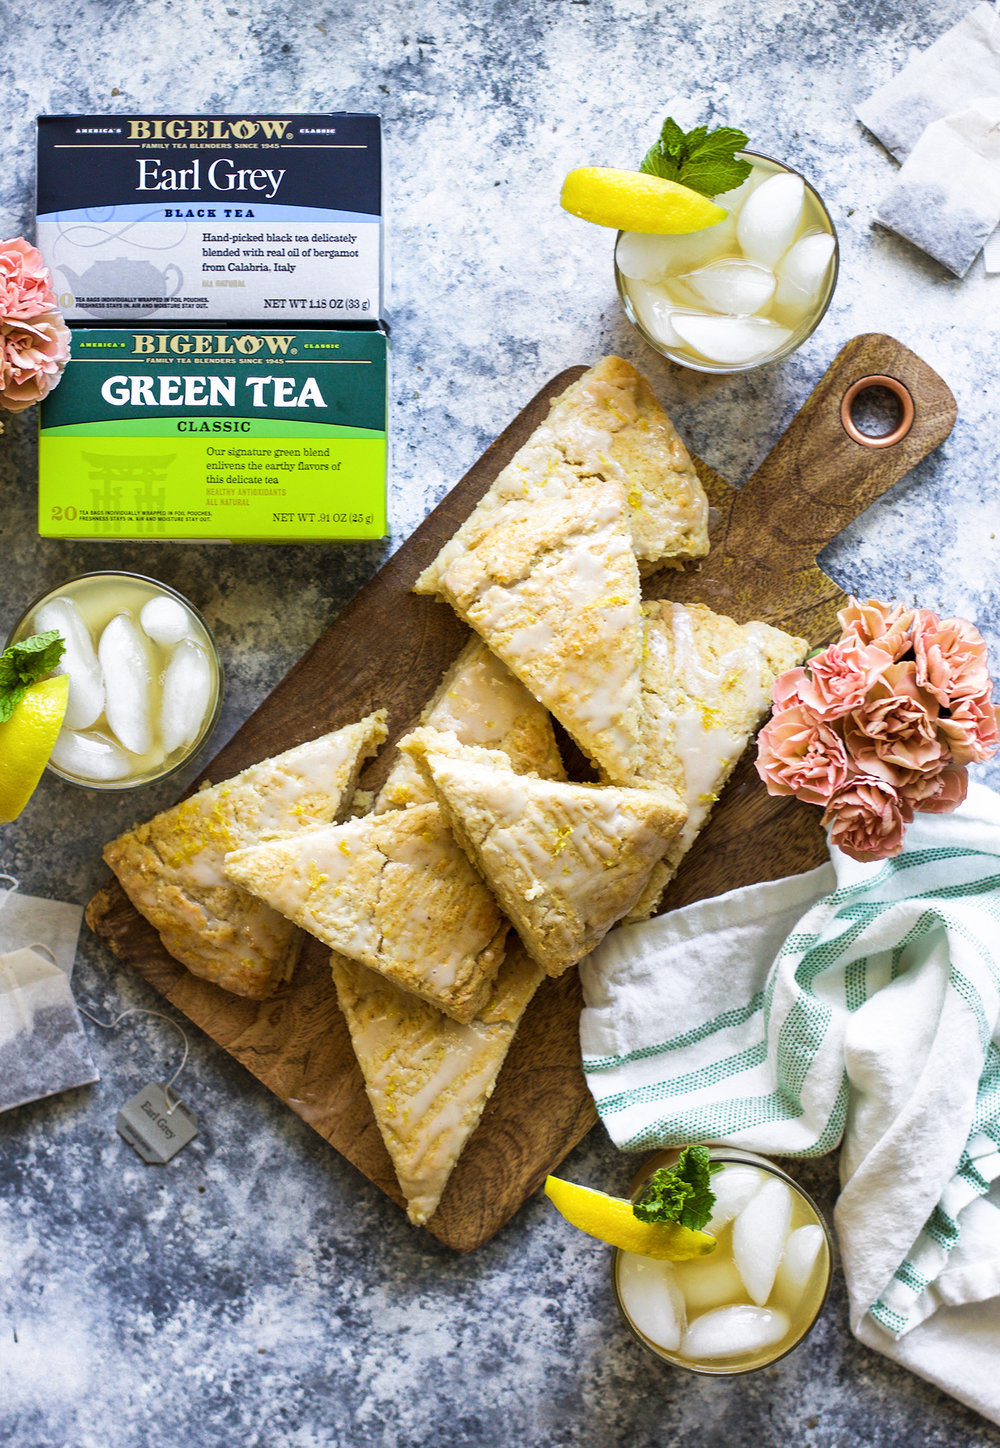 Earl Grey Lemon Scones and Iced Green Tea: My Diary of Us